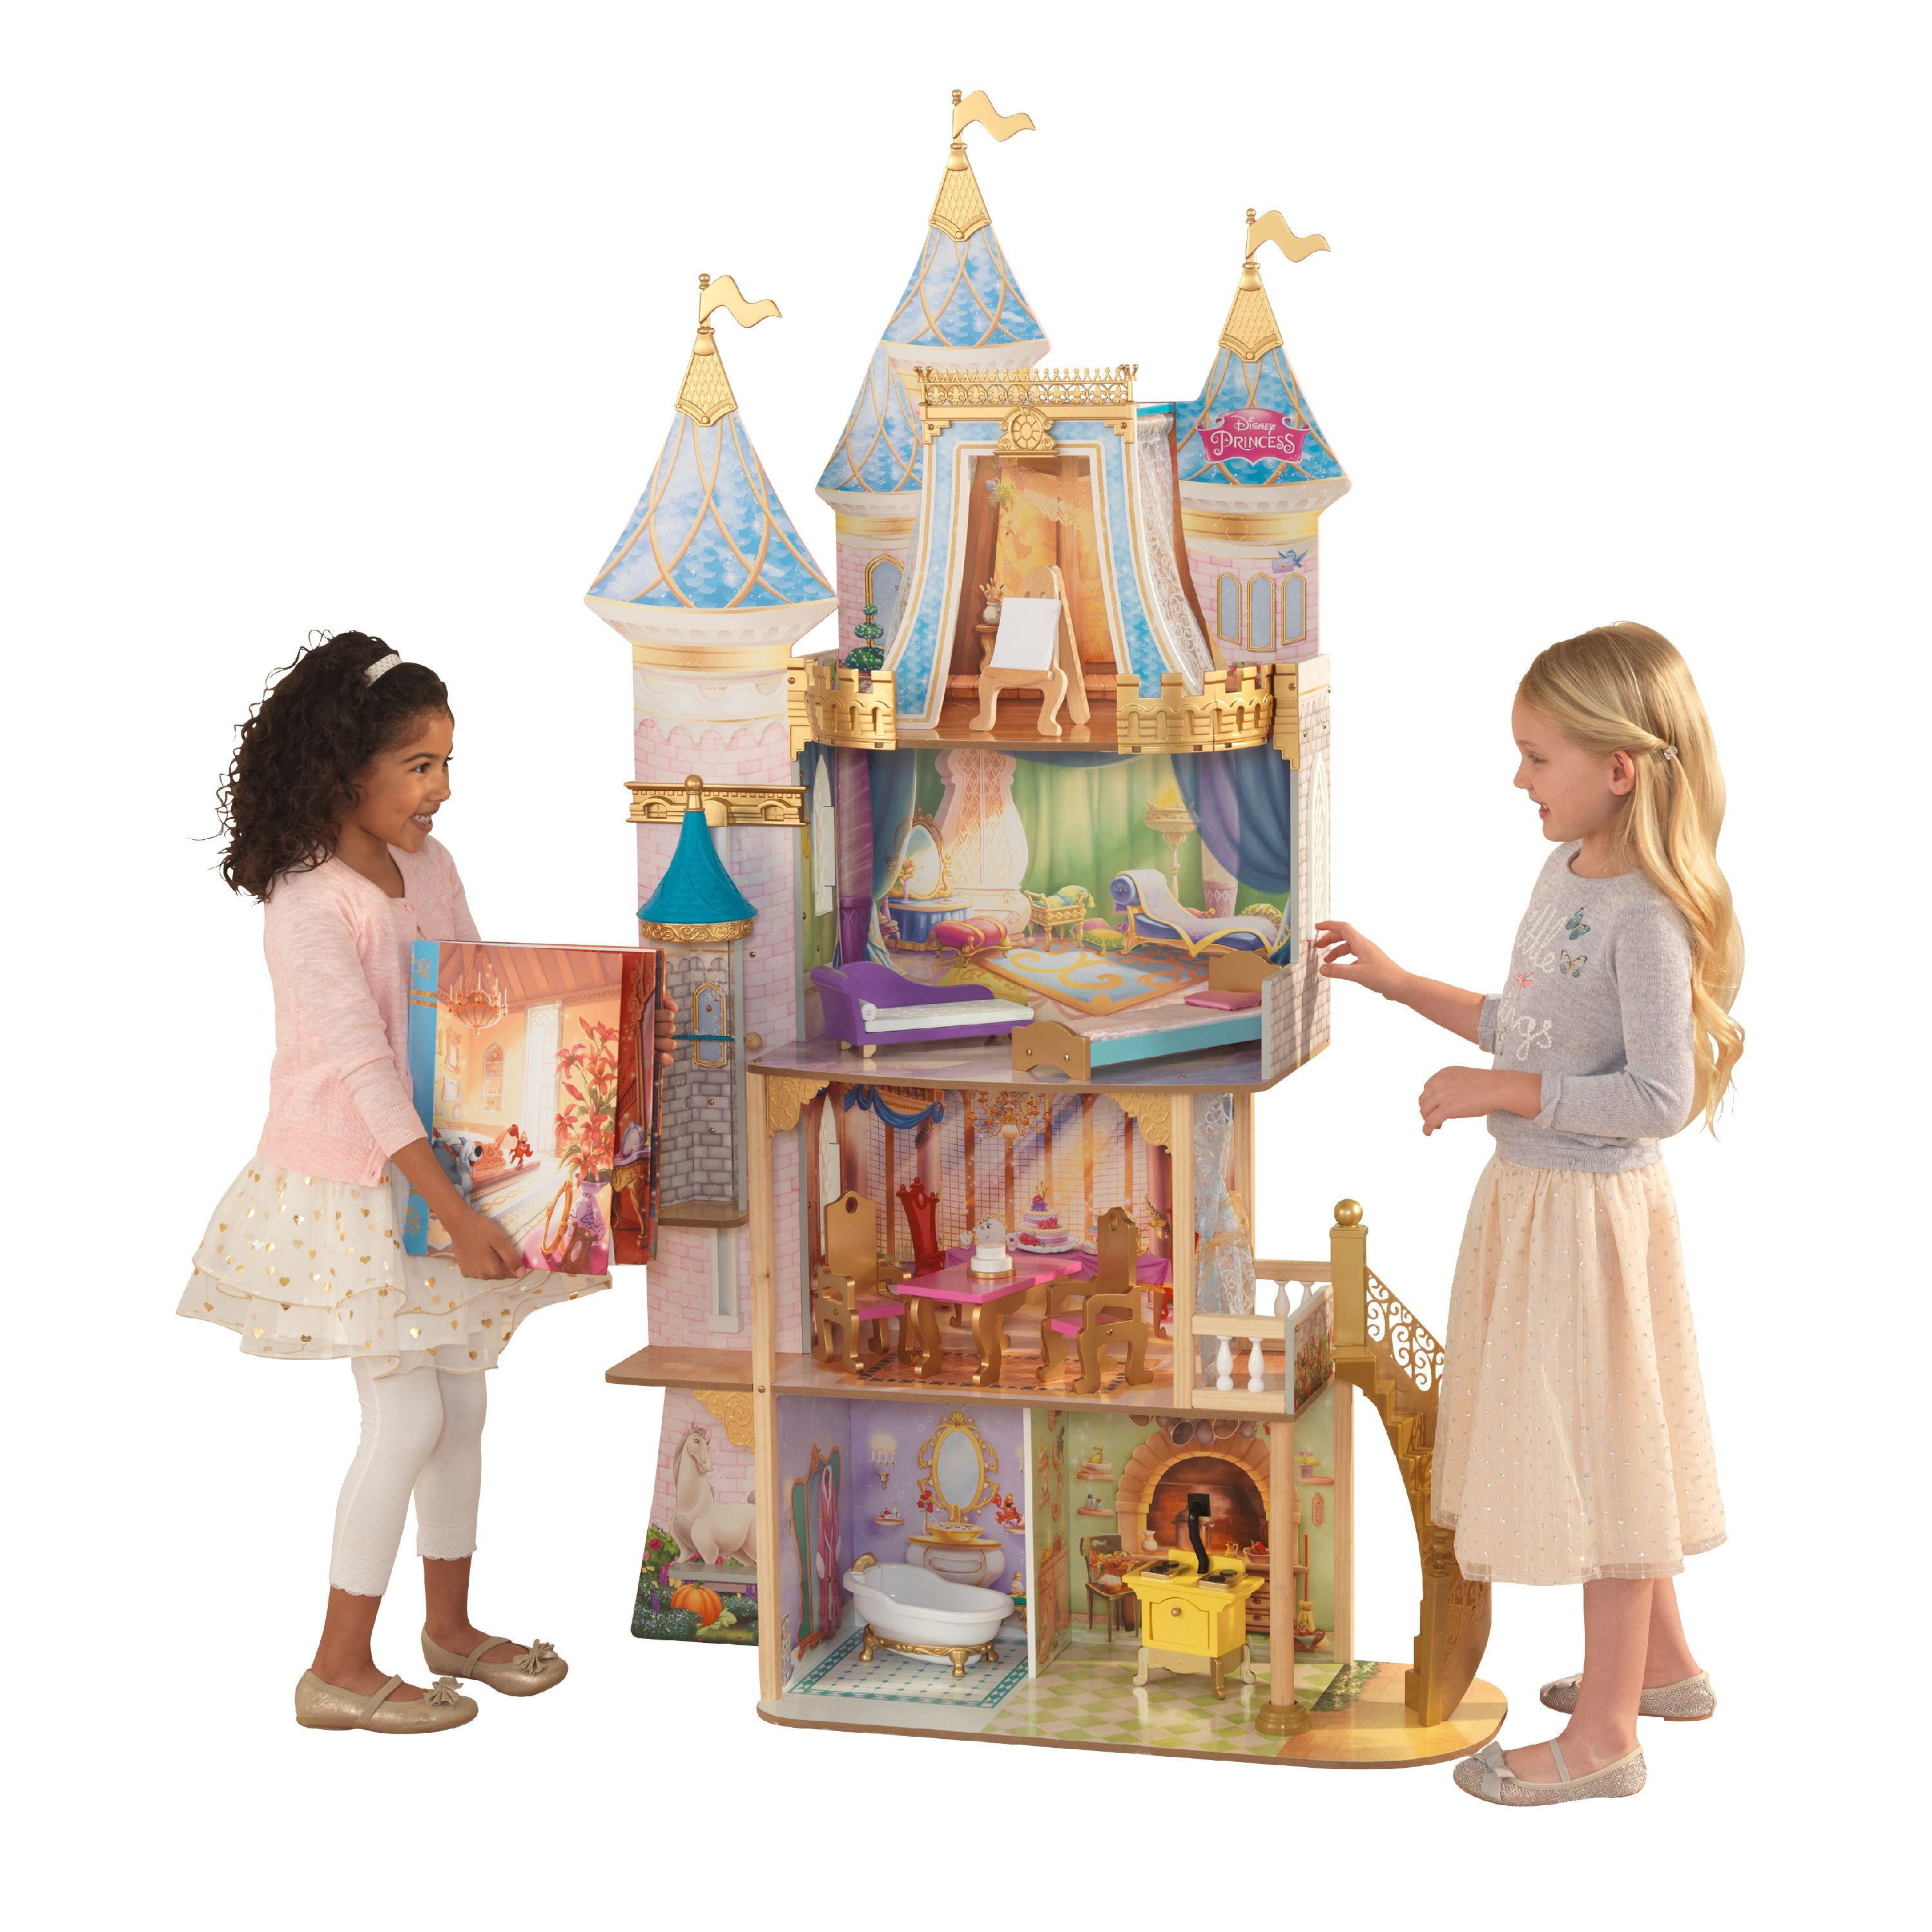 Disney® Princess Royal Celebration Wooden Dollhouse with 10-Piece Accessories and Bonus Storybook Foldout Rooms by KidKraft